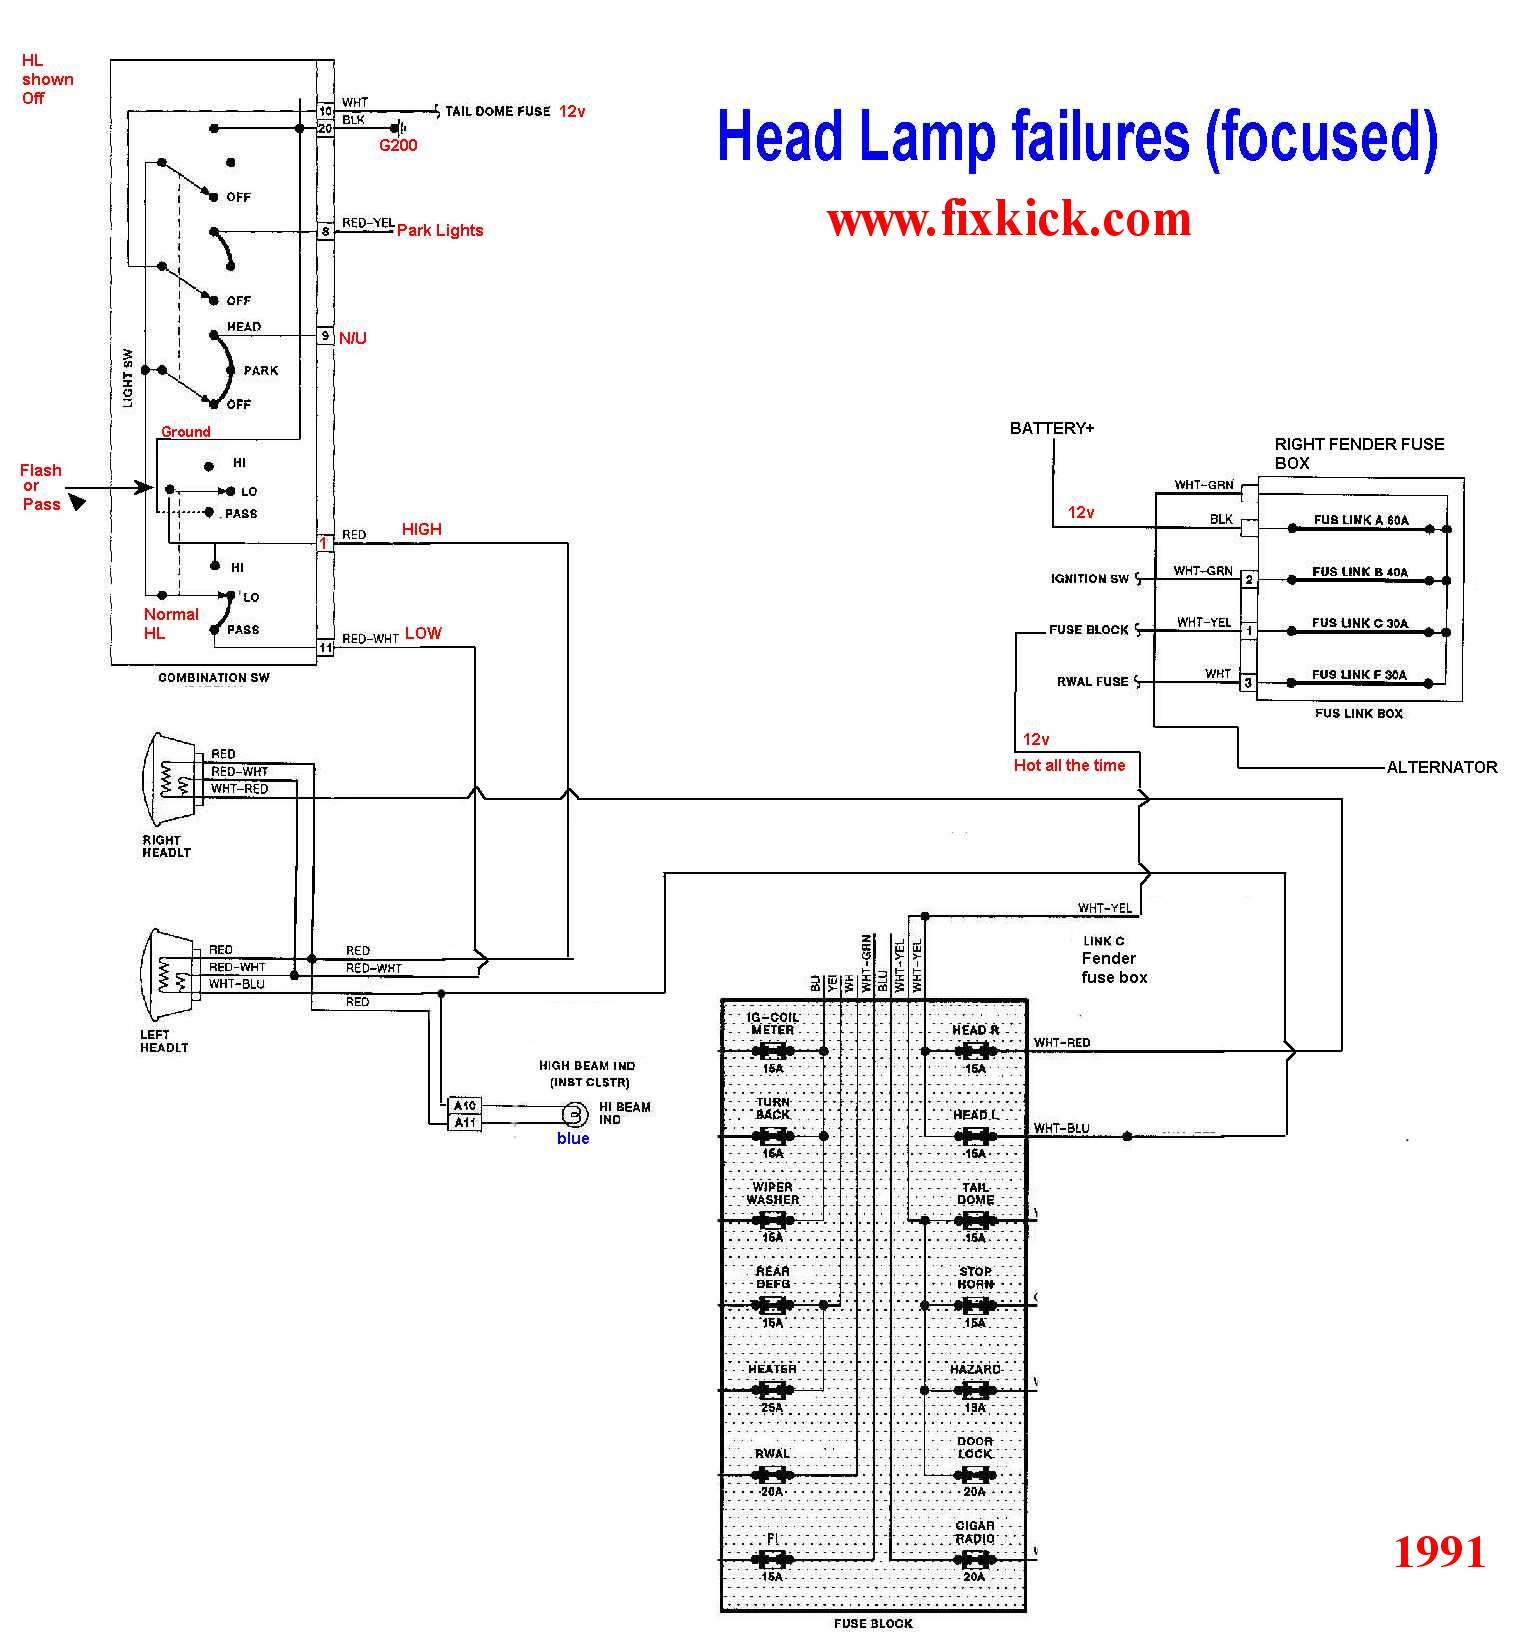 HL1A schematics to run engine 1998 chevy metro wiring diagram at mifinder.co